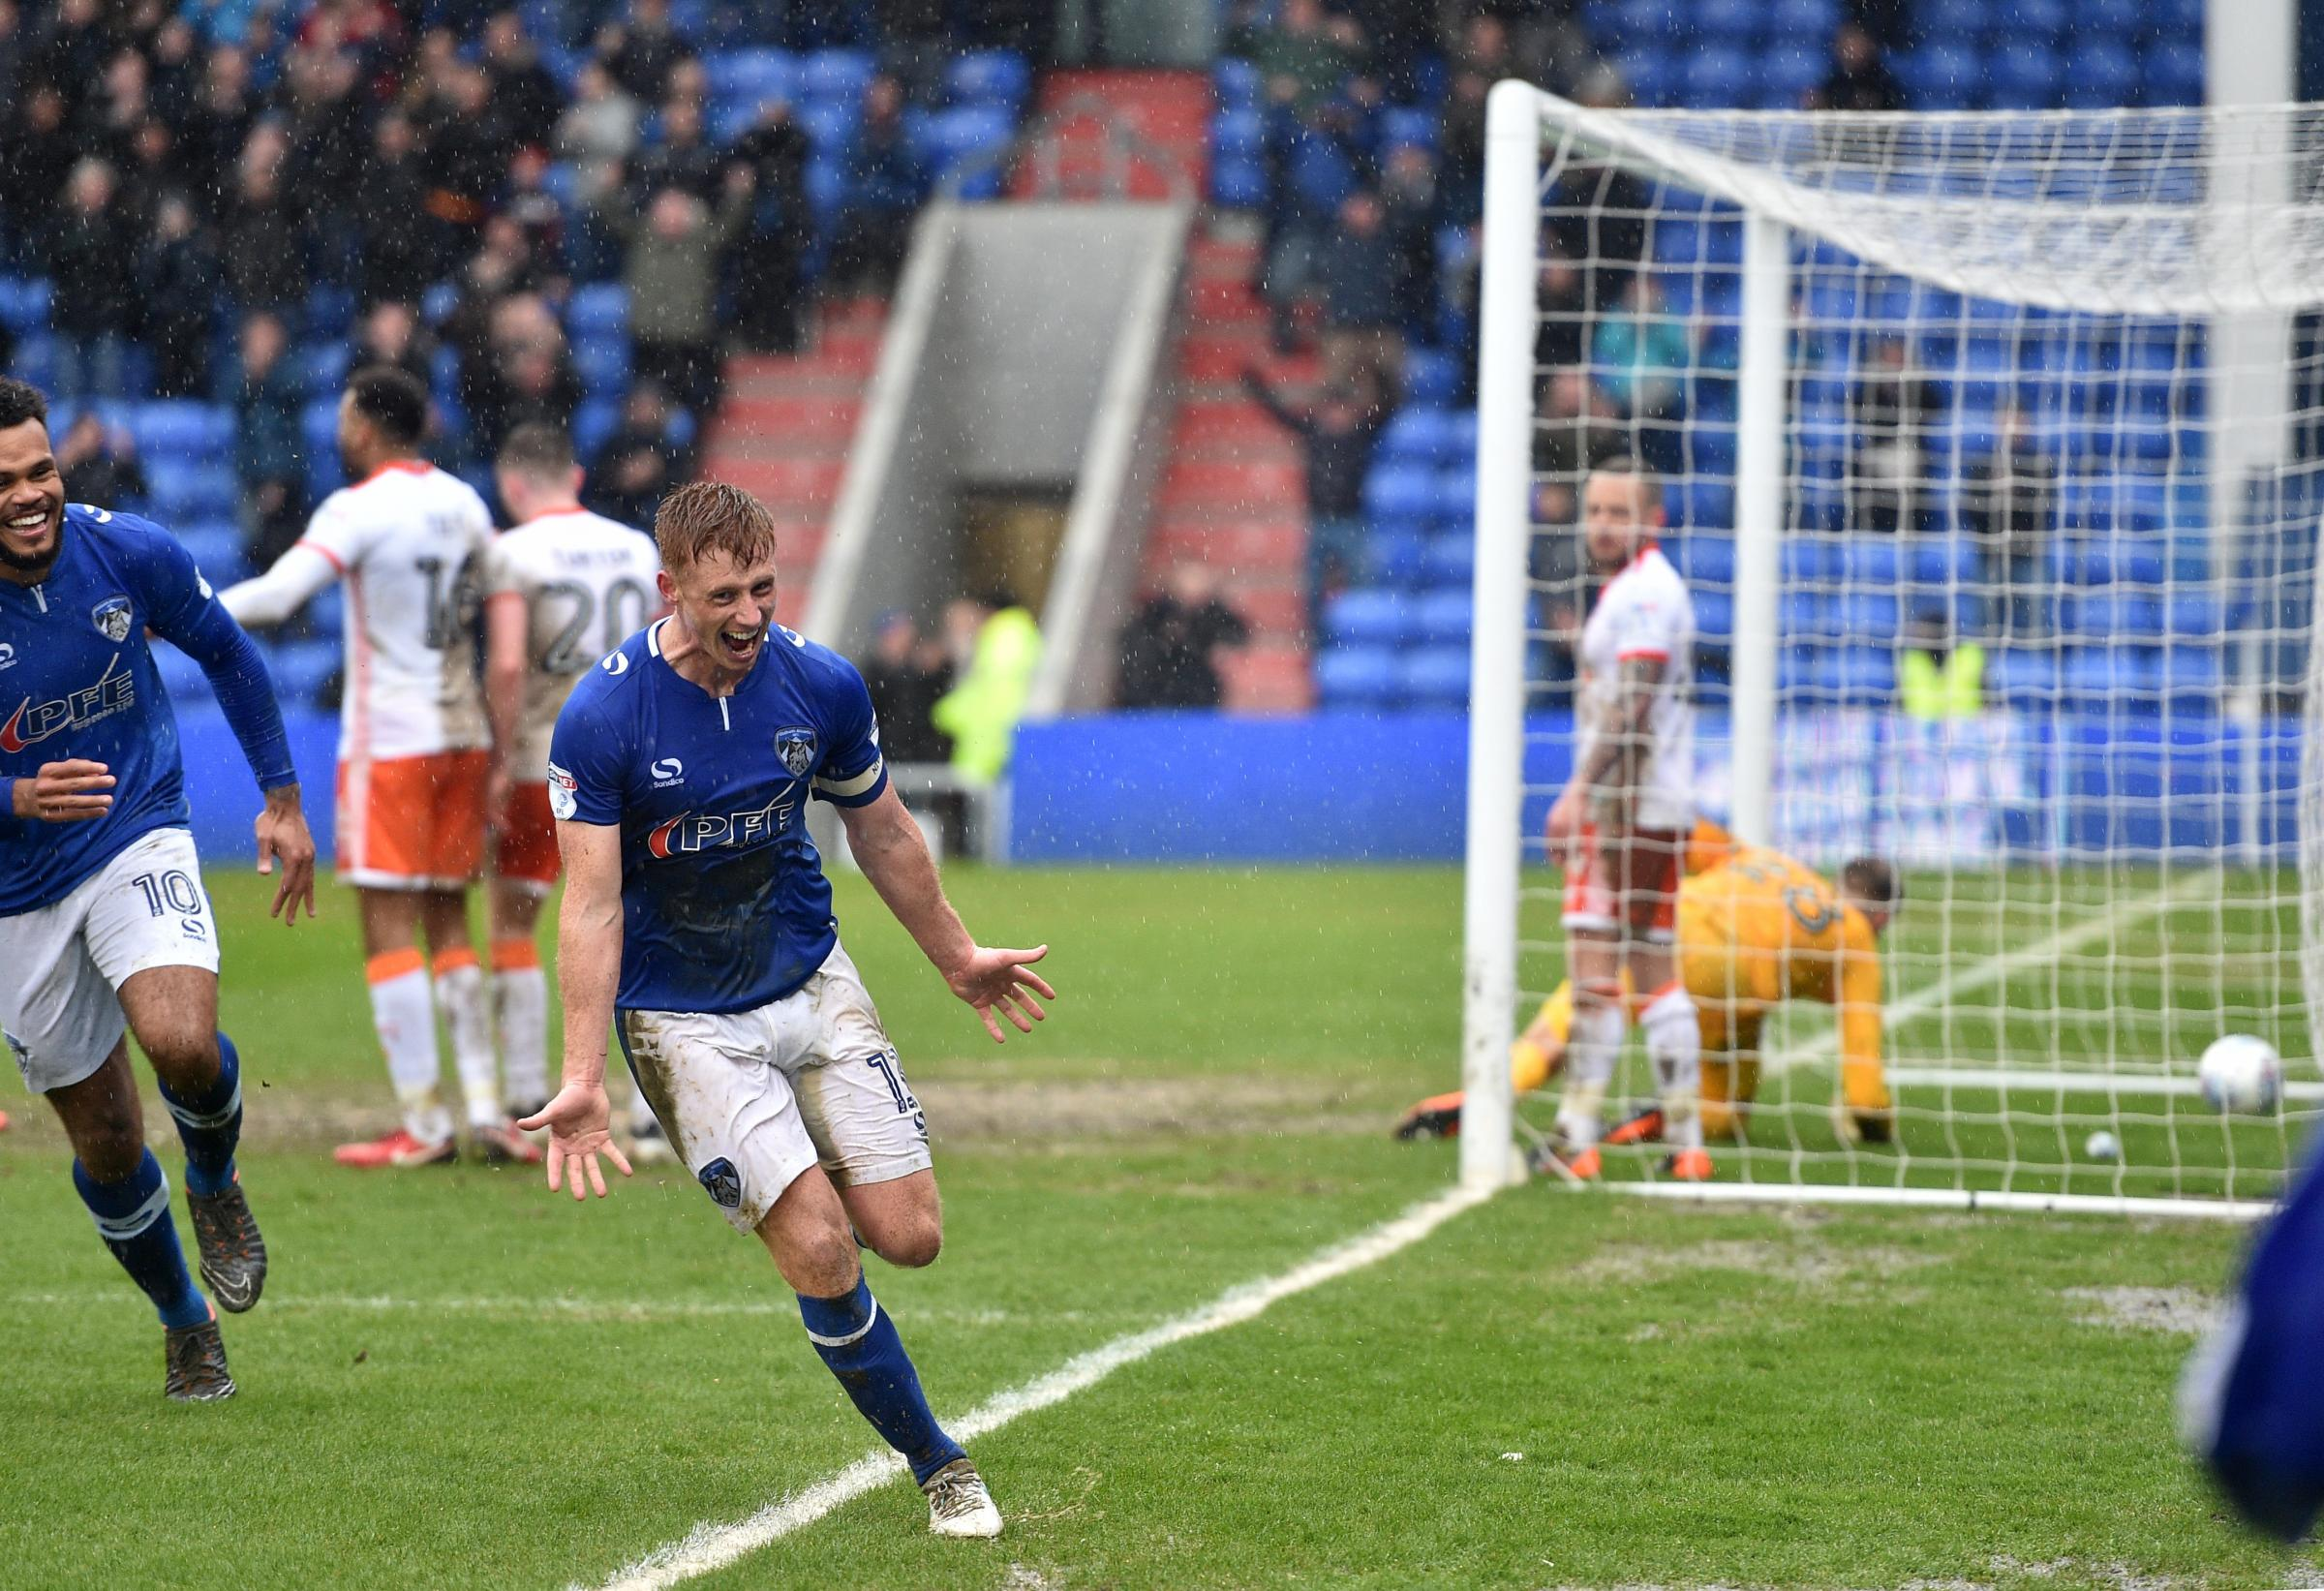 LATICS hope to be celebrating come the final whistle on Saturday. Picture: Alan Howarth